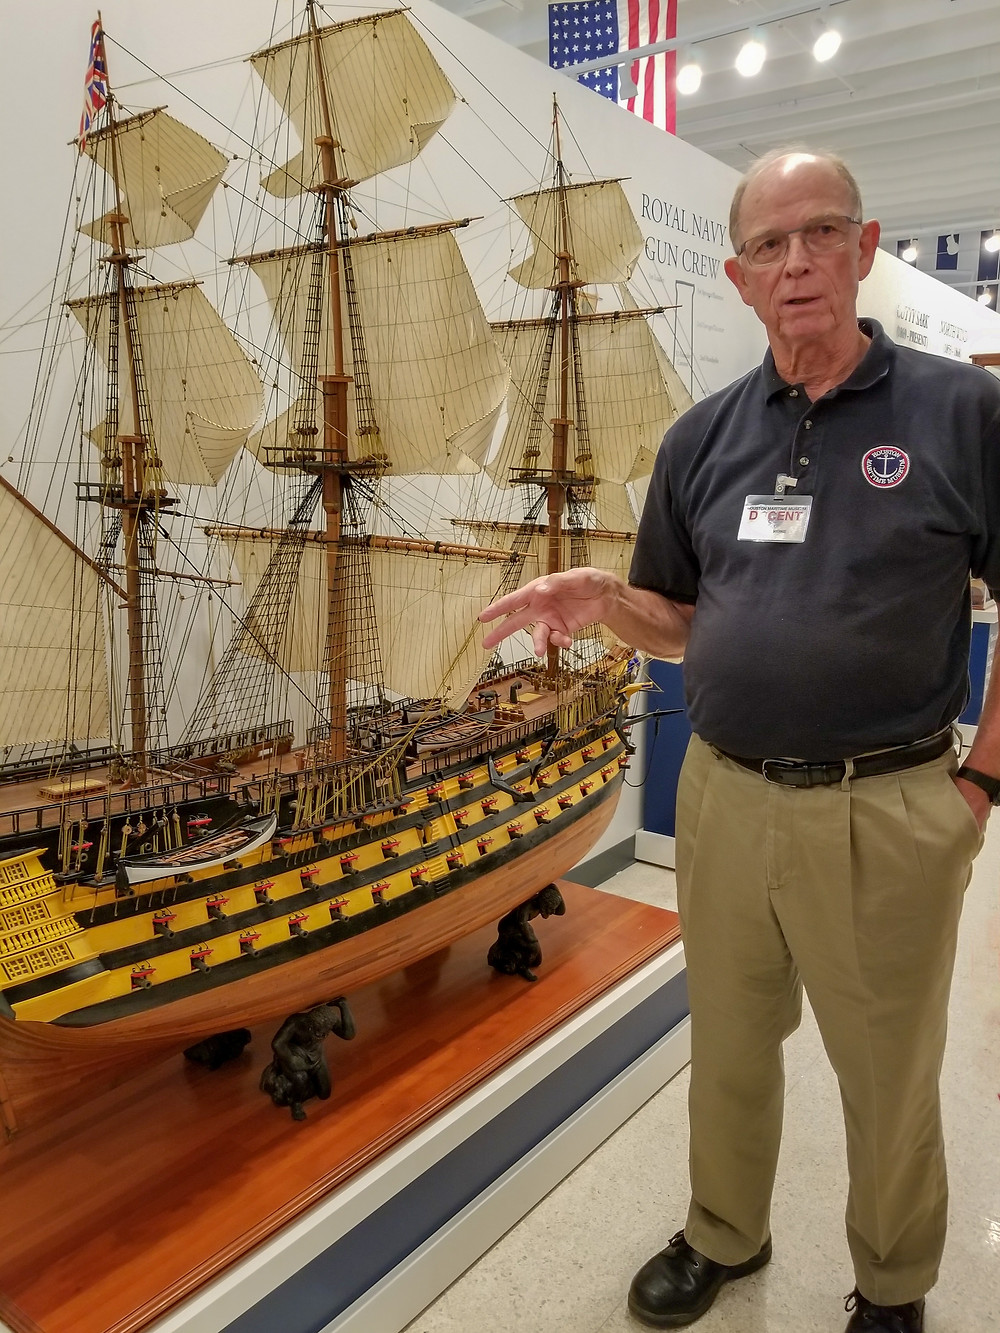 Milt Rose a docent at Houston Maritime Museum stands beside large model ship.